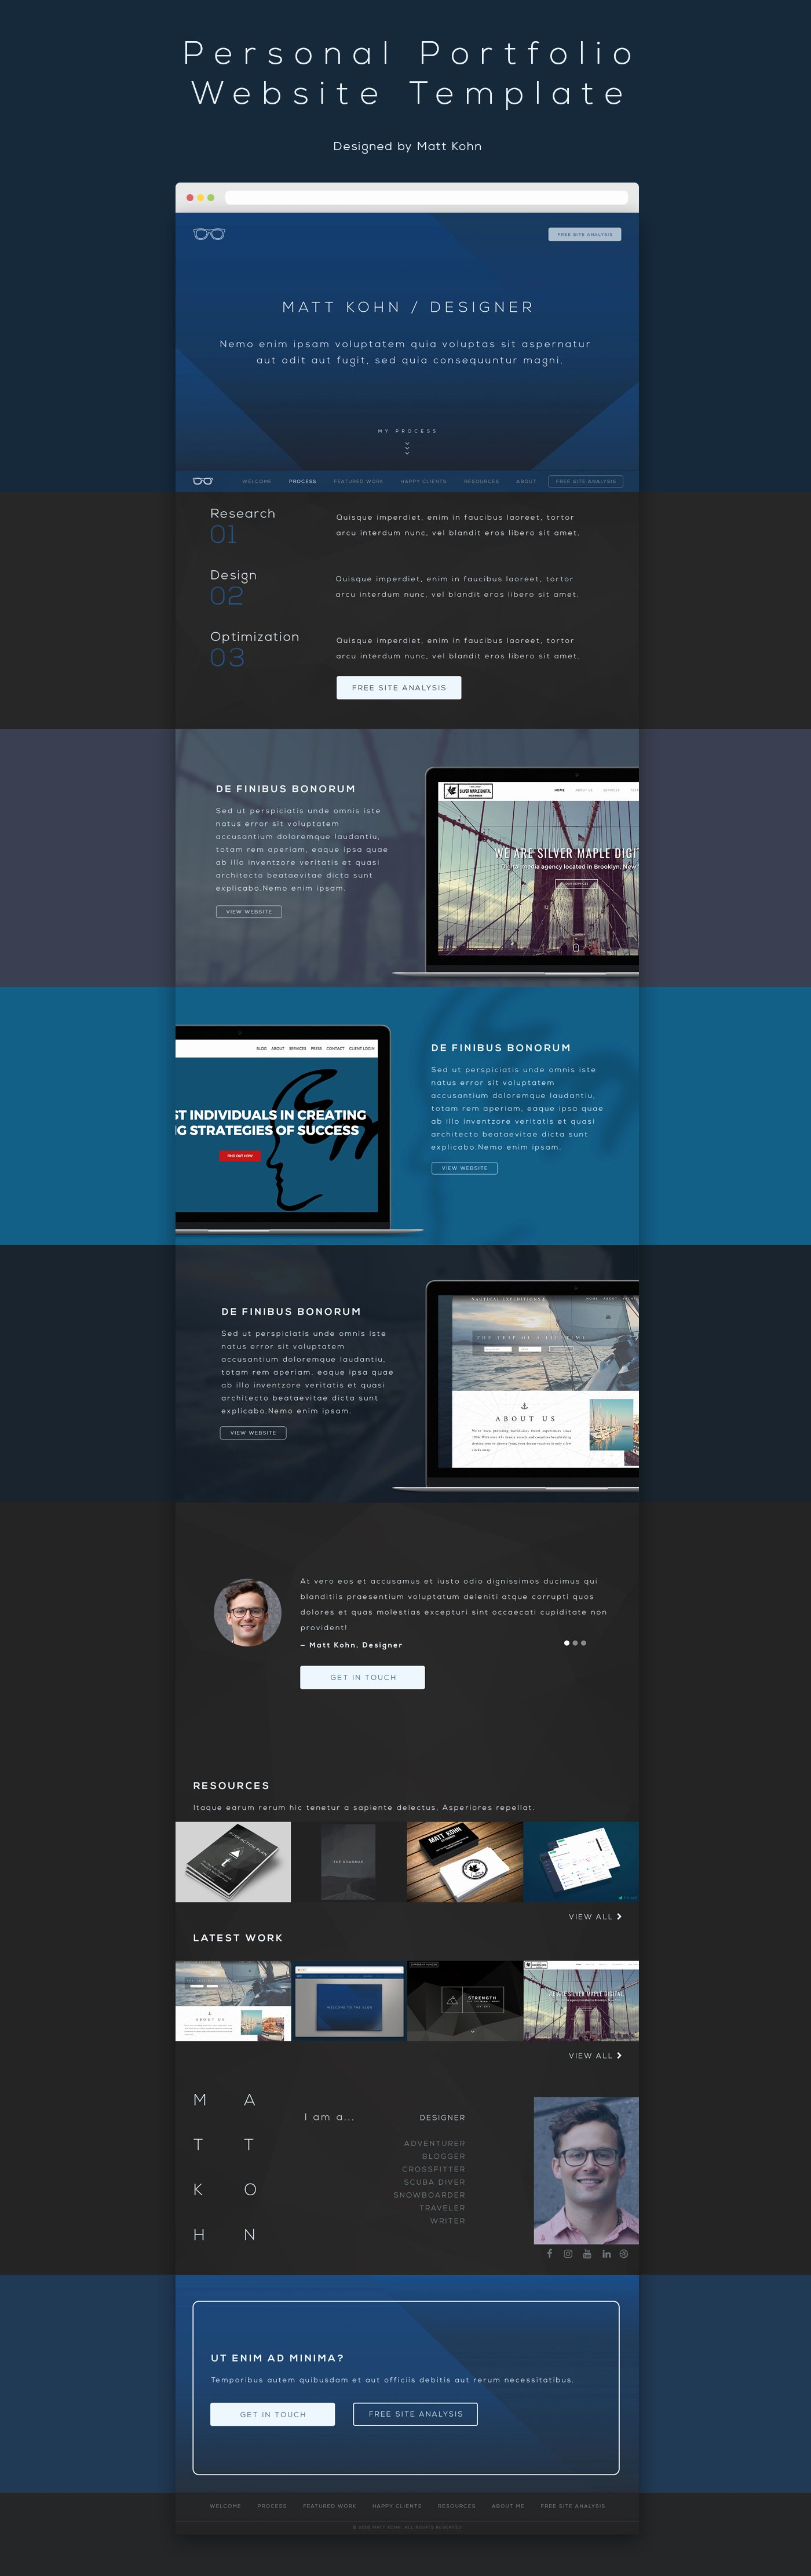 7 HTML Css Personal Website Templates Free Download – Latter